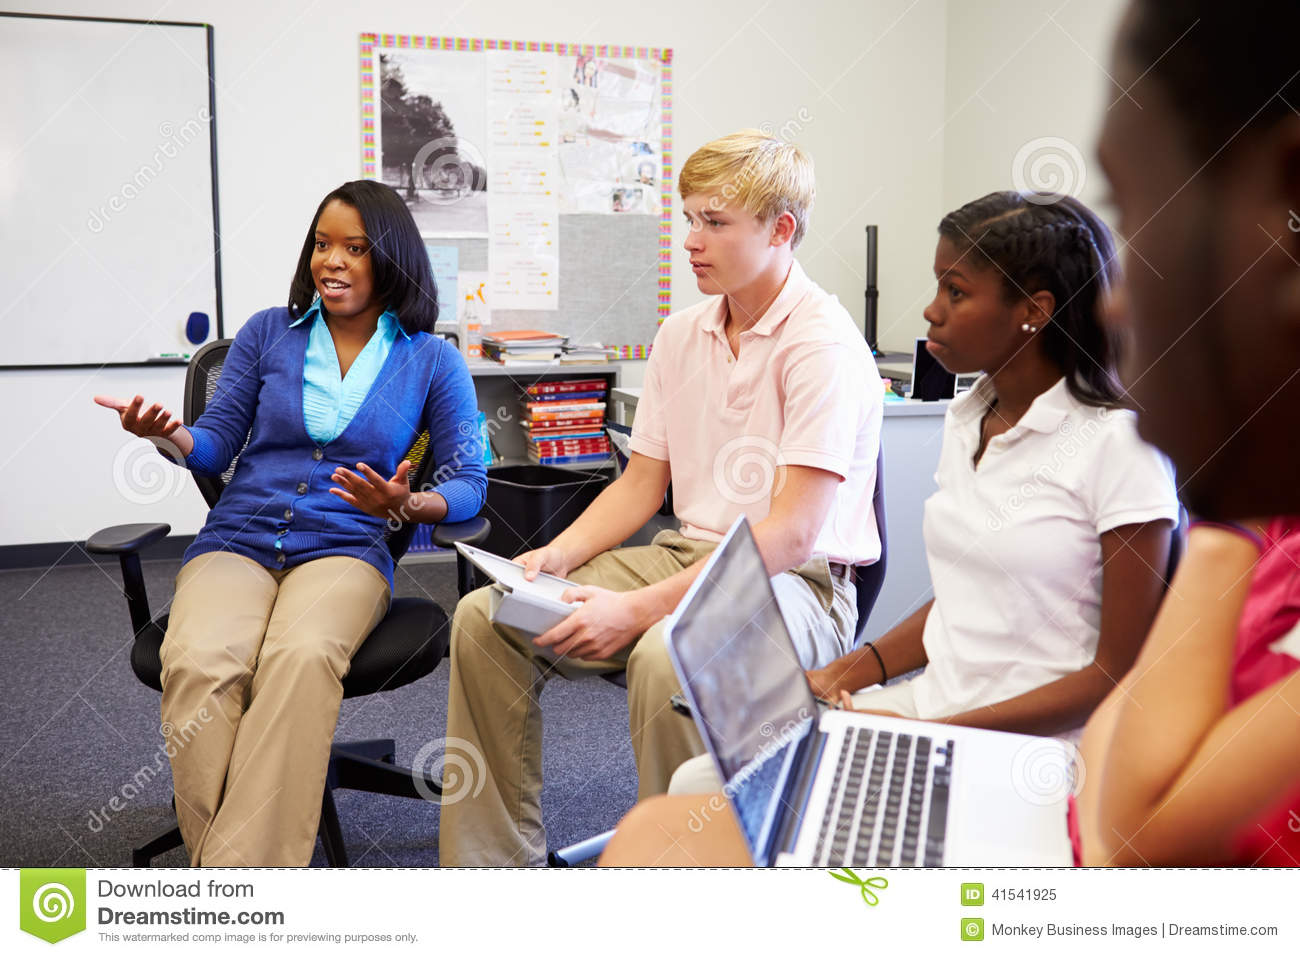 High School Students Taking Part In Group Discussi Stock Photo - Image: 41541925